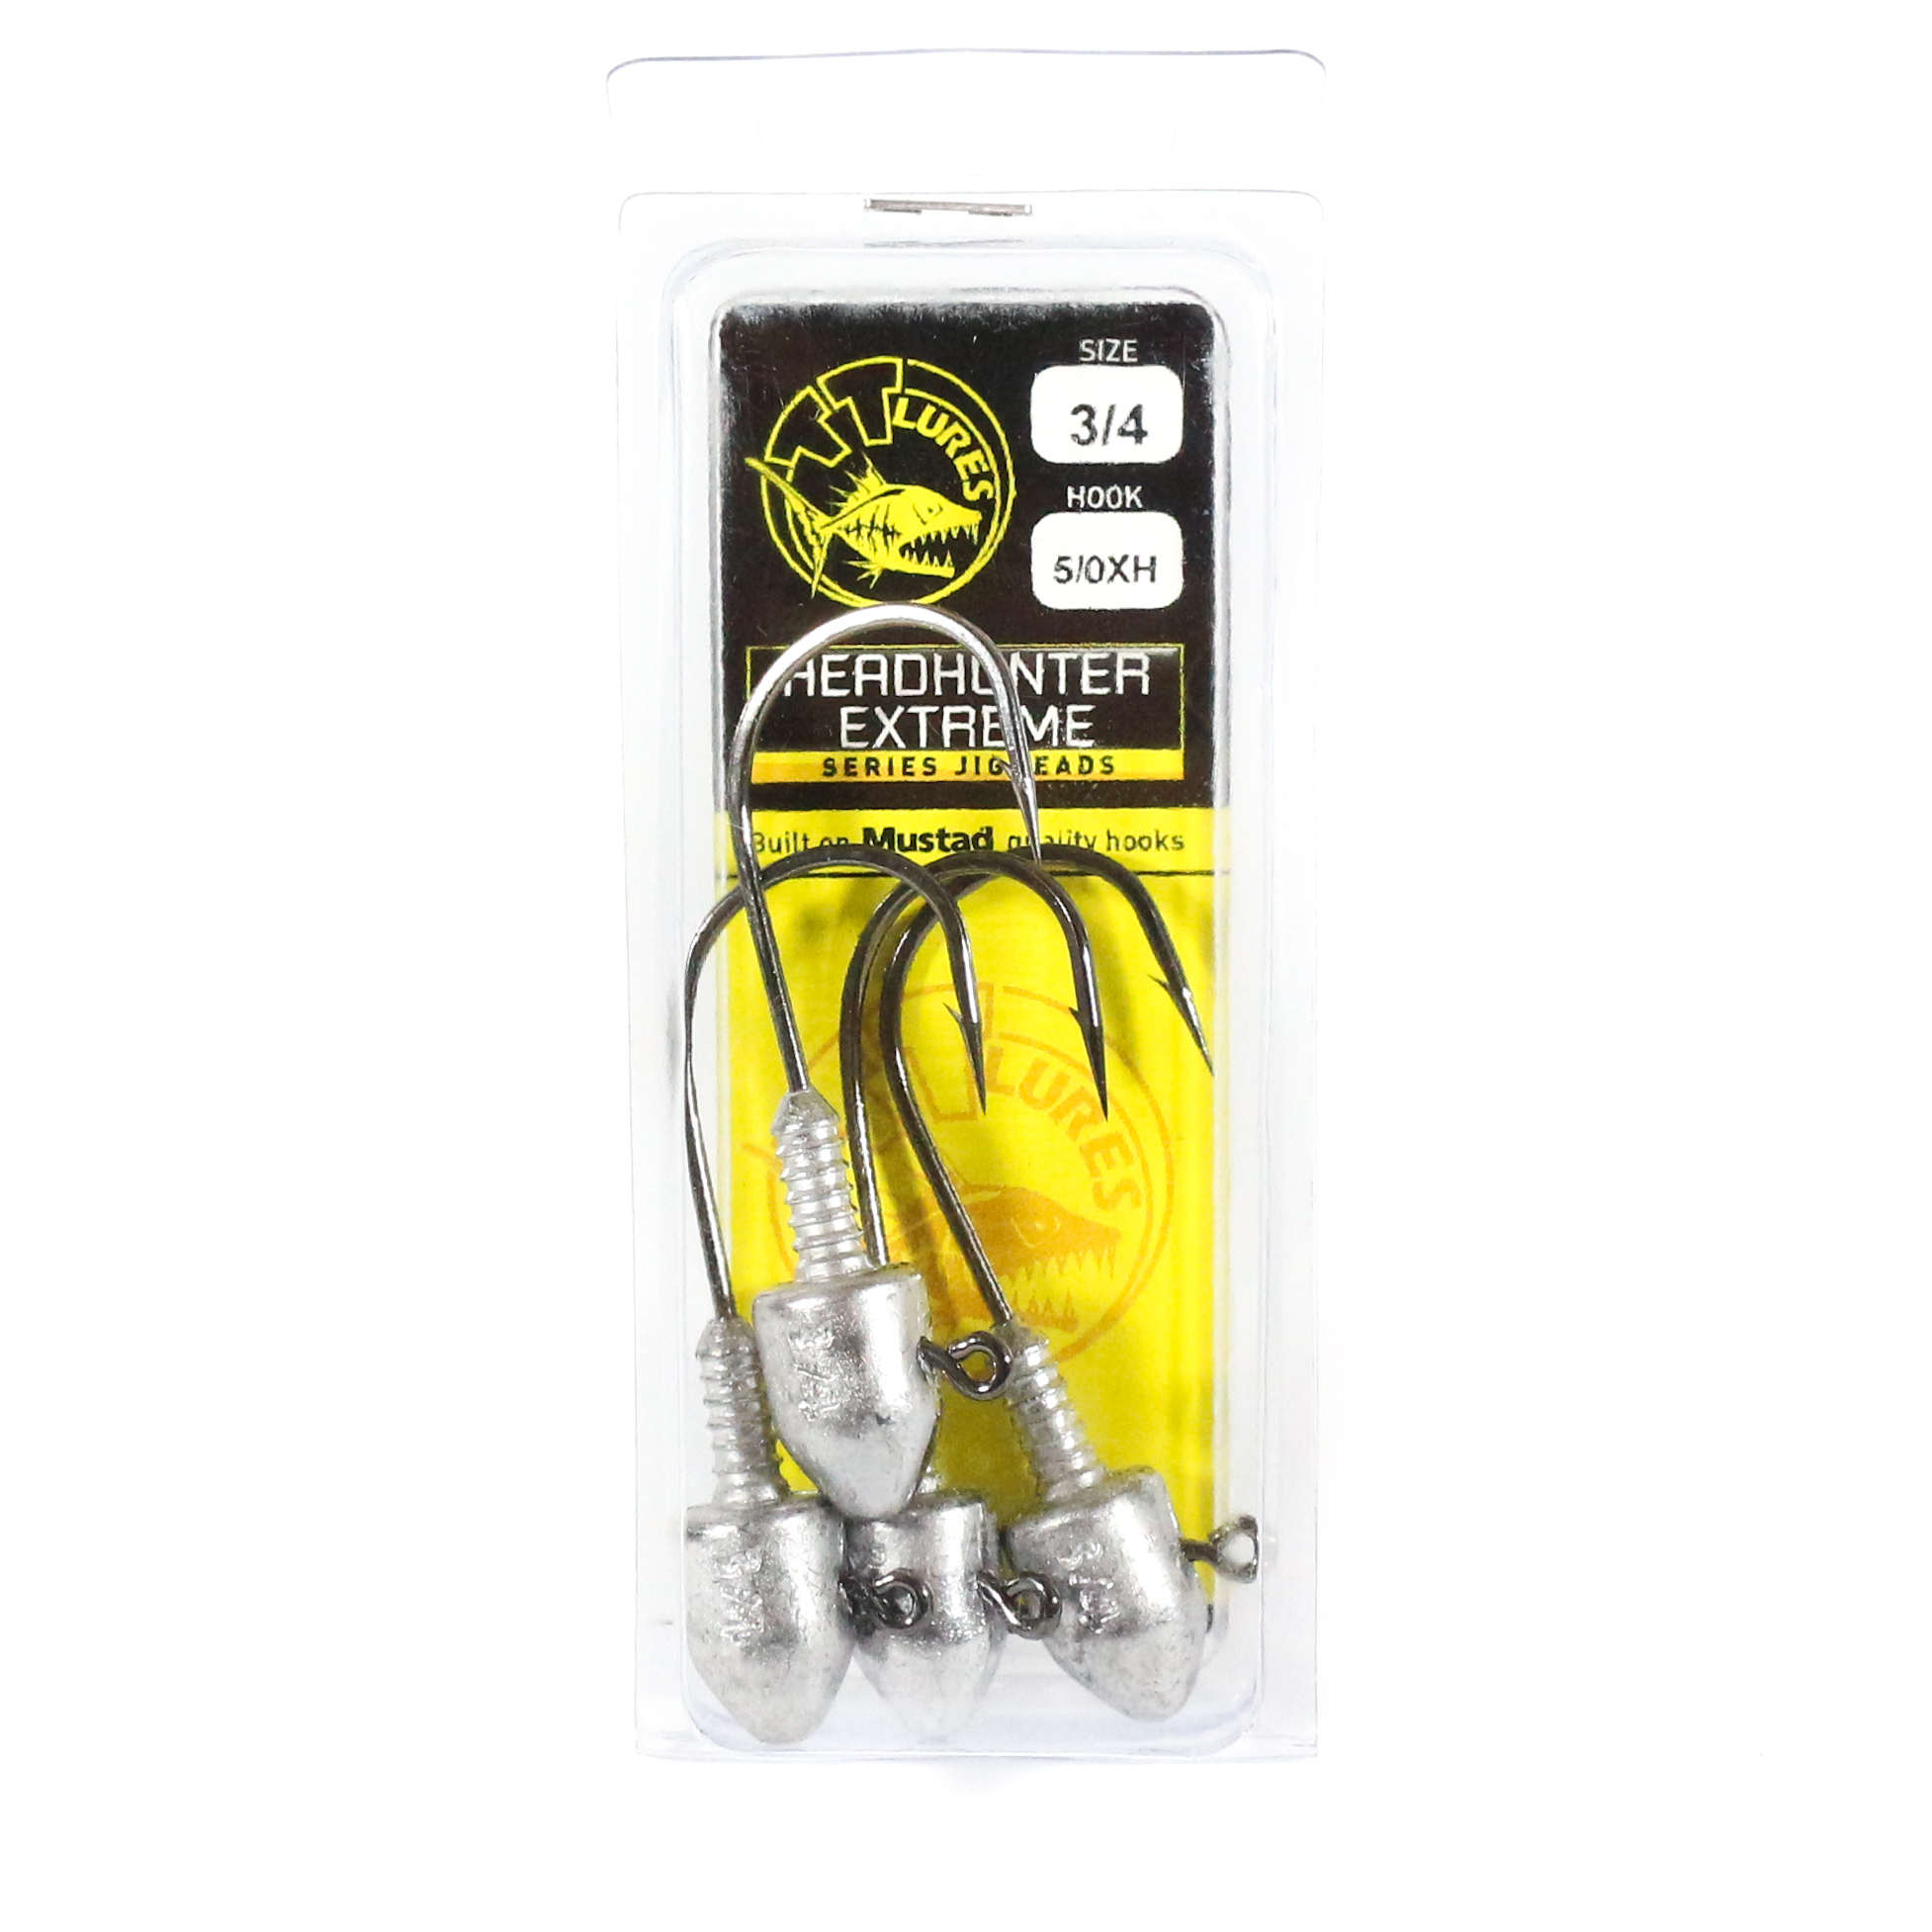 Tackle Tactics TT Head Hunter Extreme Jig Head 3/4 oz 5/0 XH 4 per pack (1364)